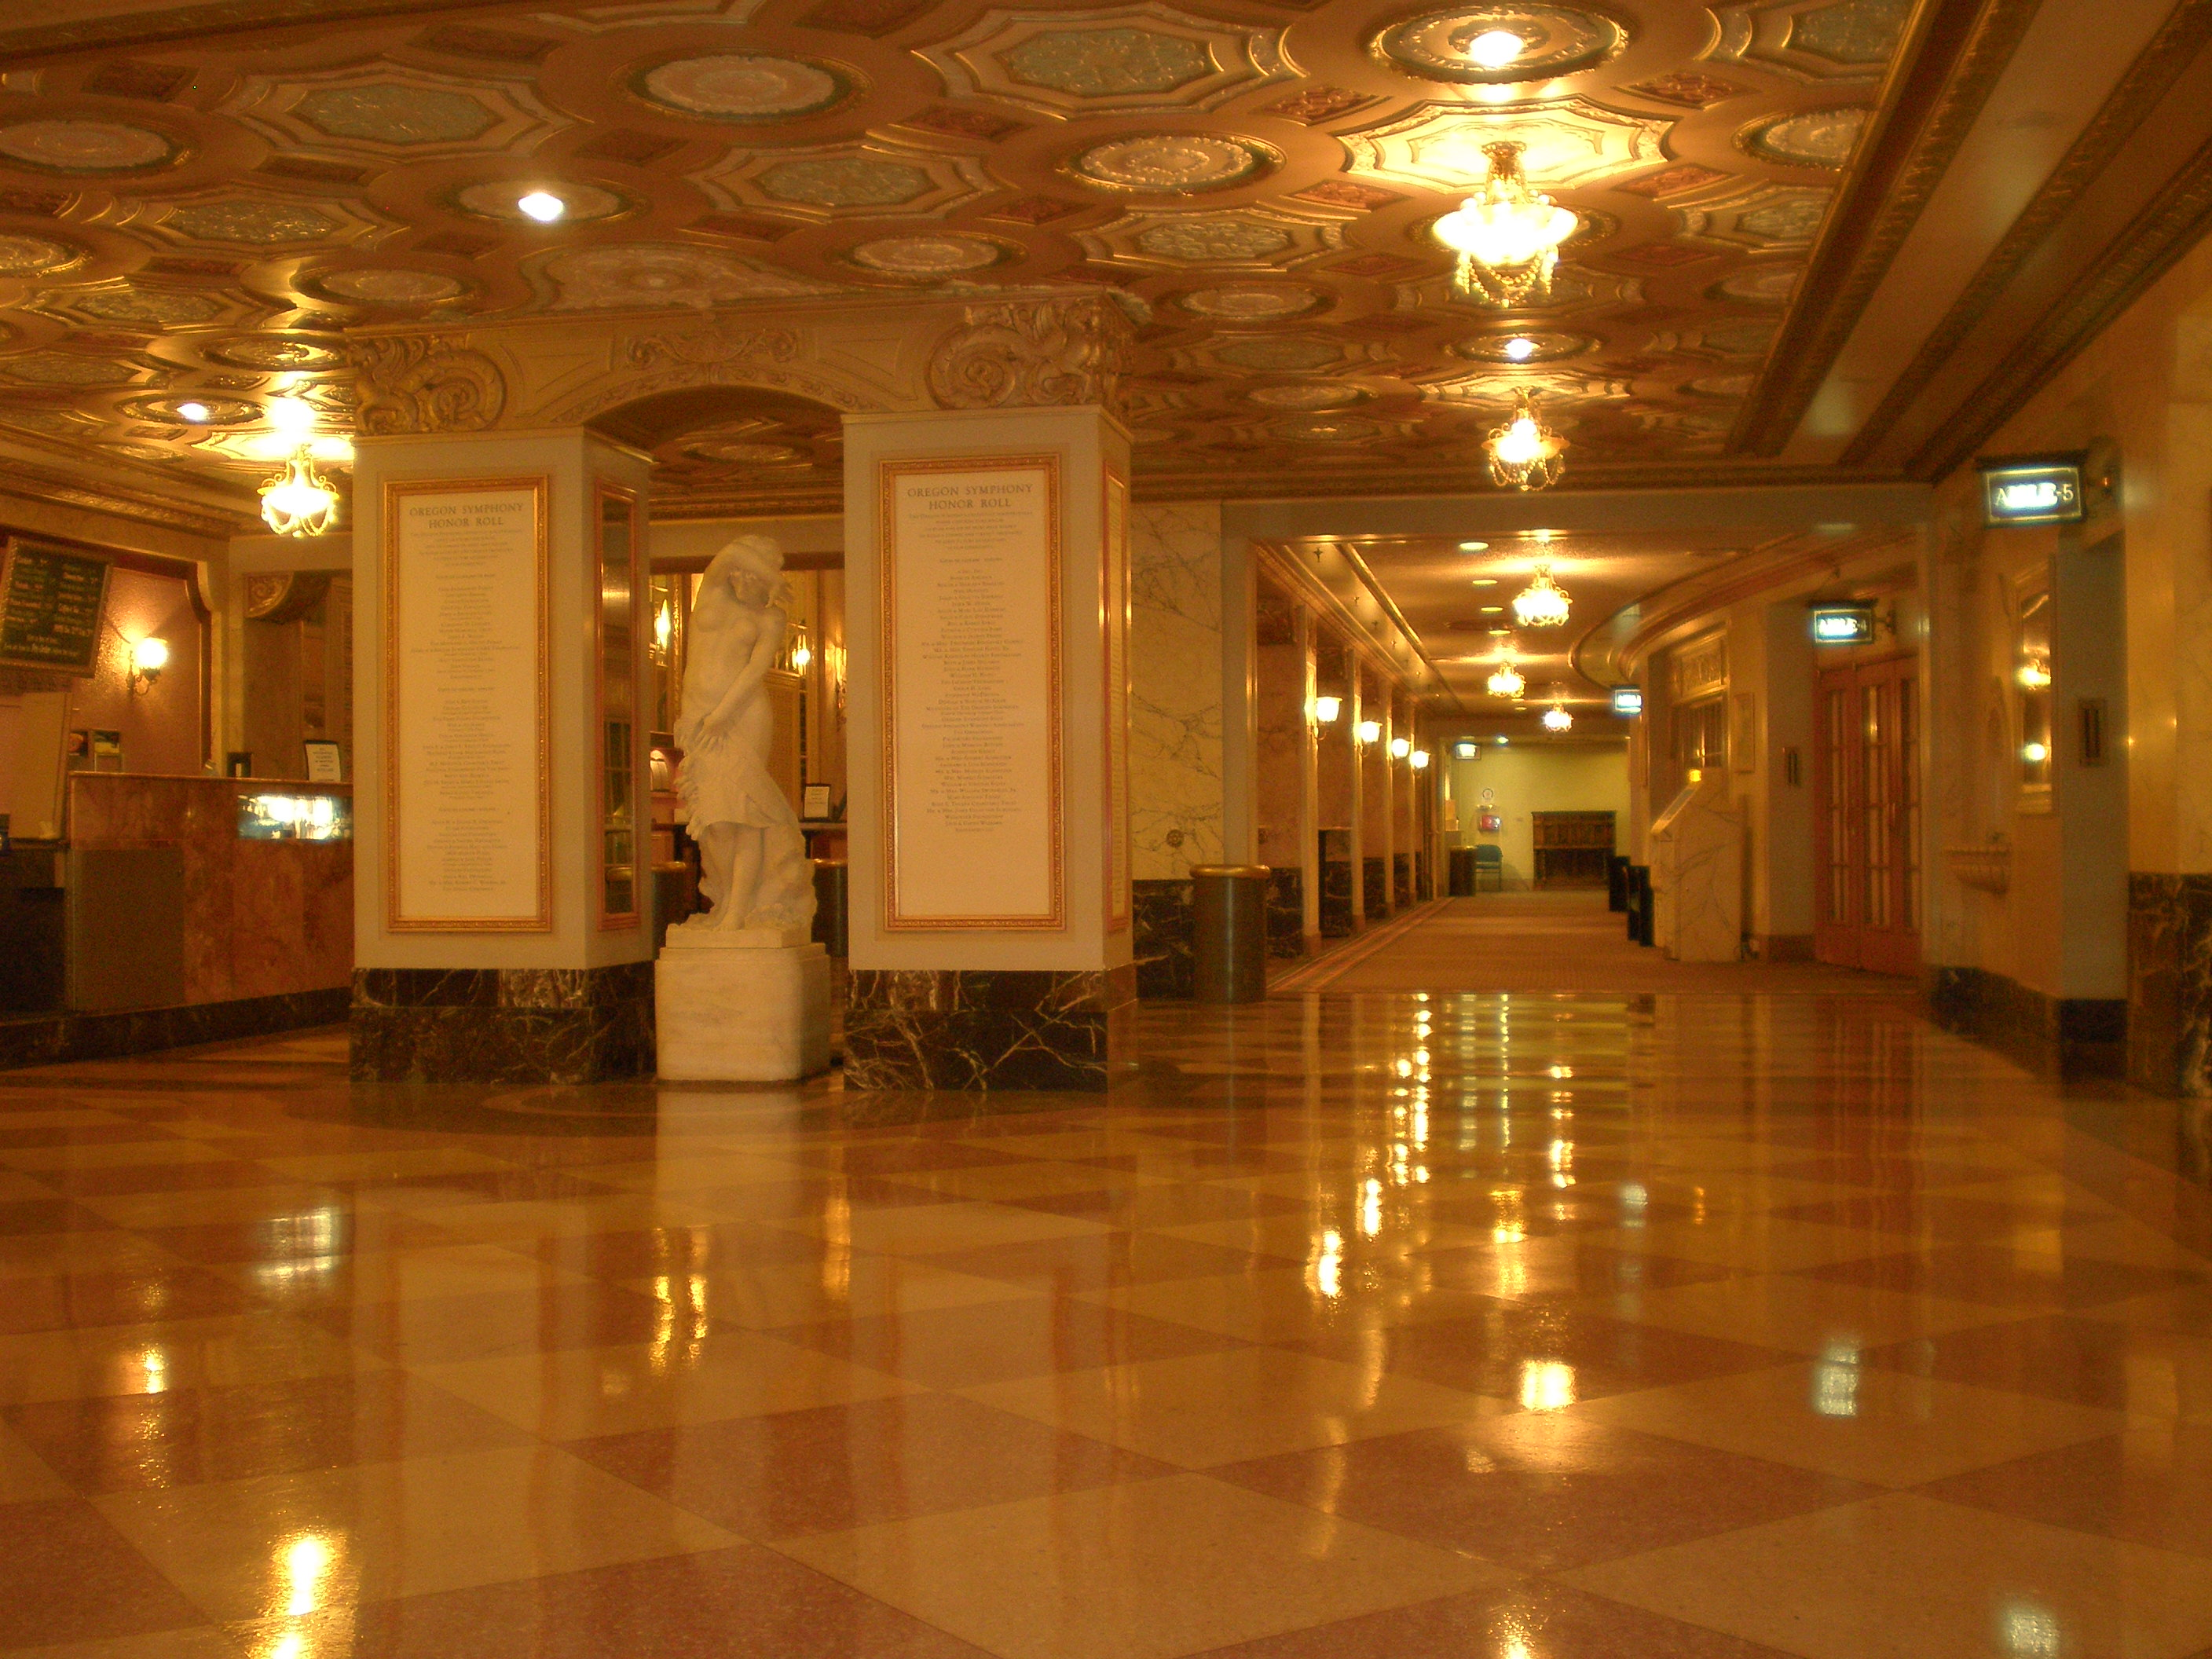 FileArlene Schnitzer Concert Hall Main Floorjpg Wikimedia Commons - Portland schnitzer concert hall